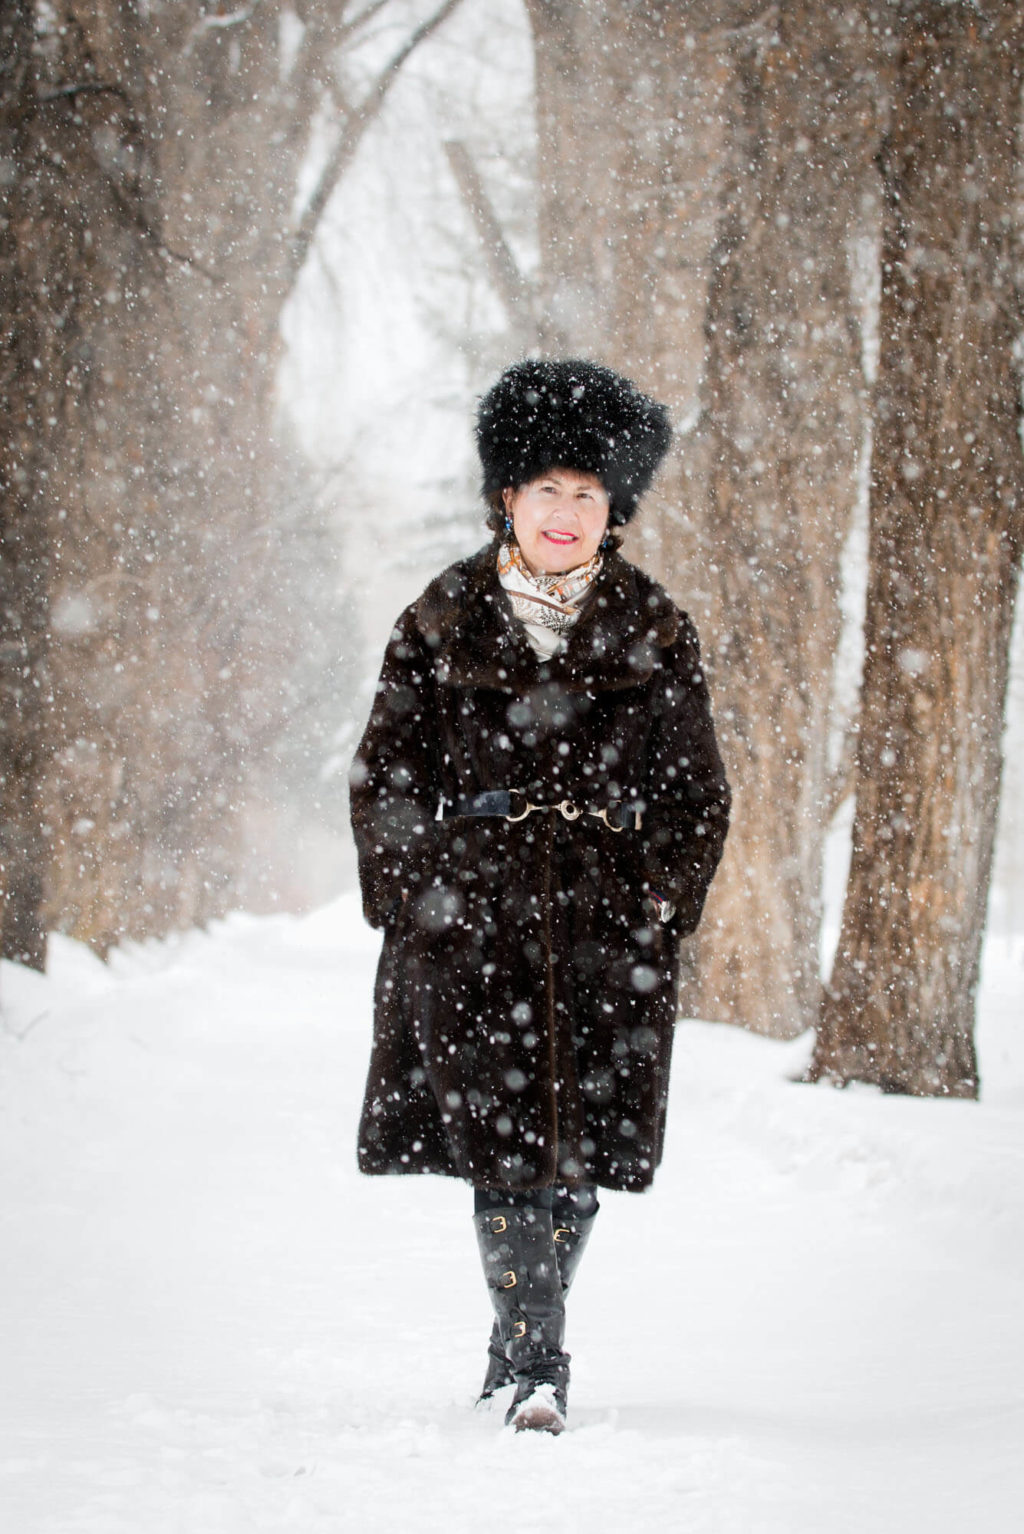 women walking while its snowing dressed in a fur coat and hat